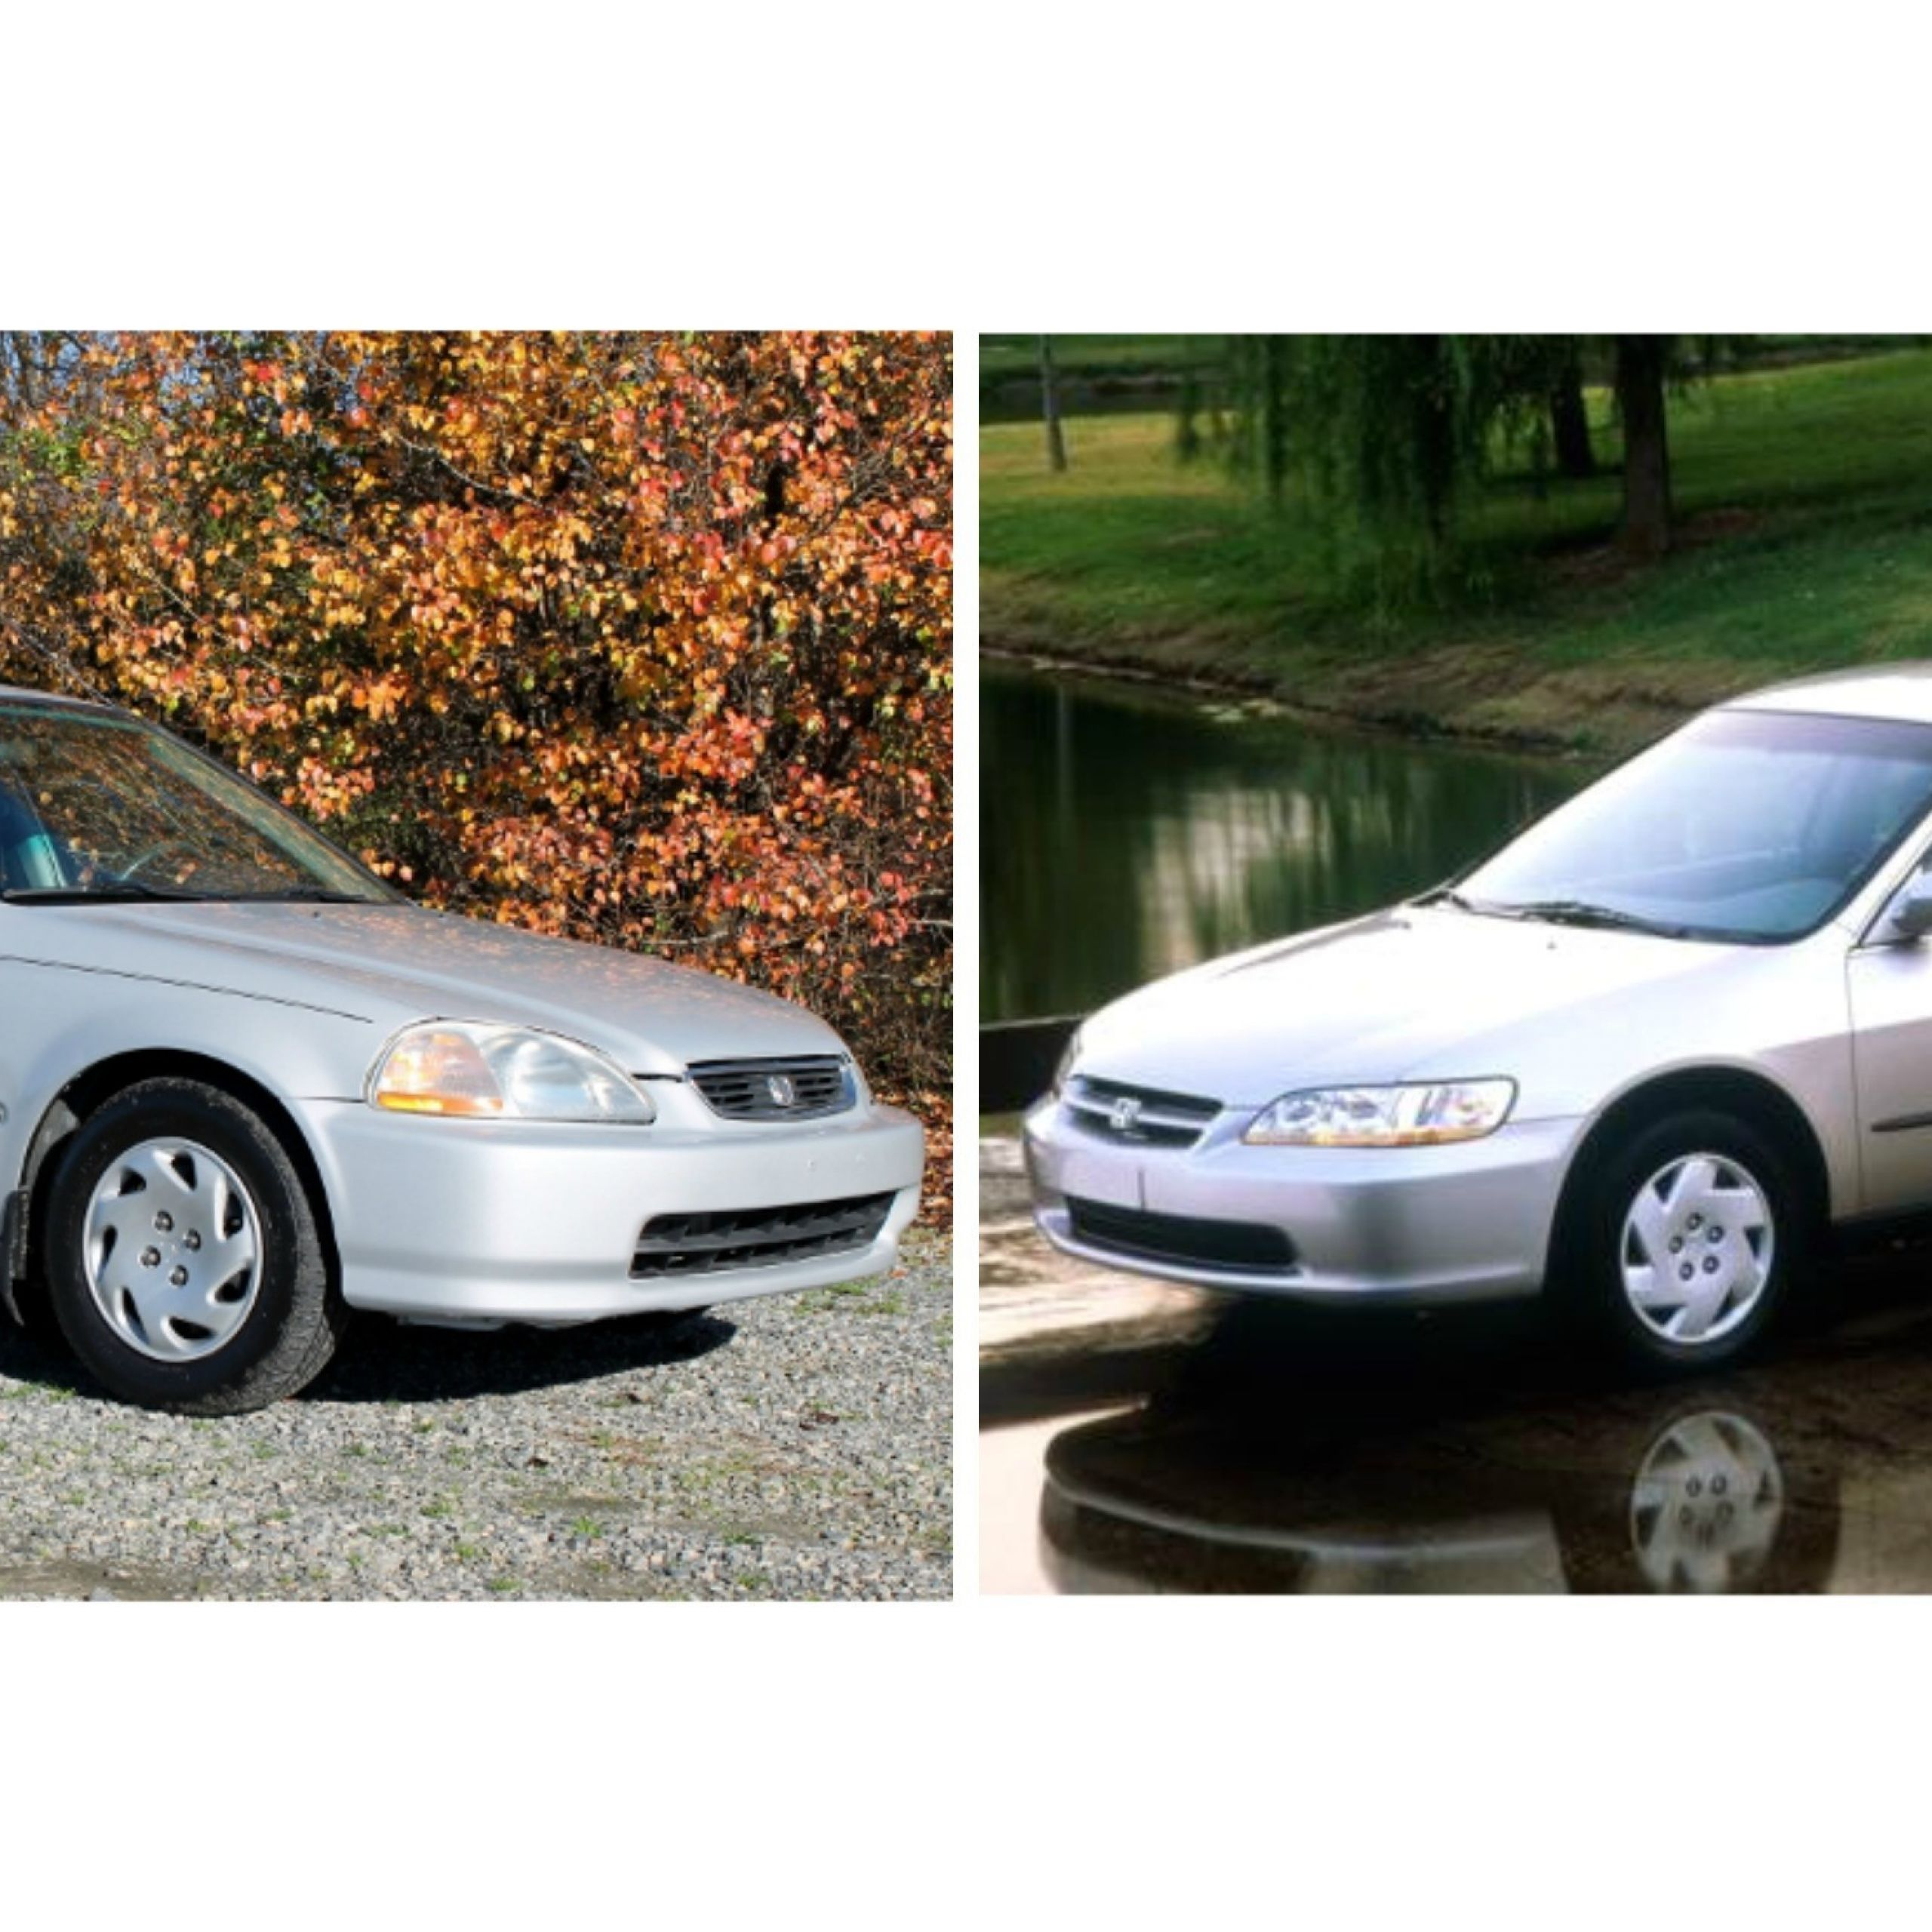 2016 Altima Awesome the 1997 Honda Accord tops the Most Stolen Car List Again